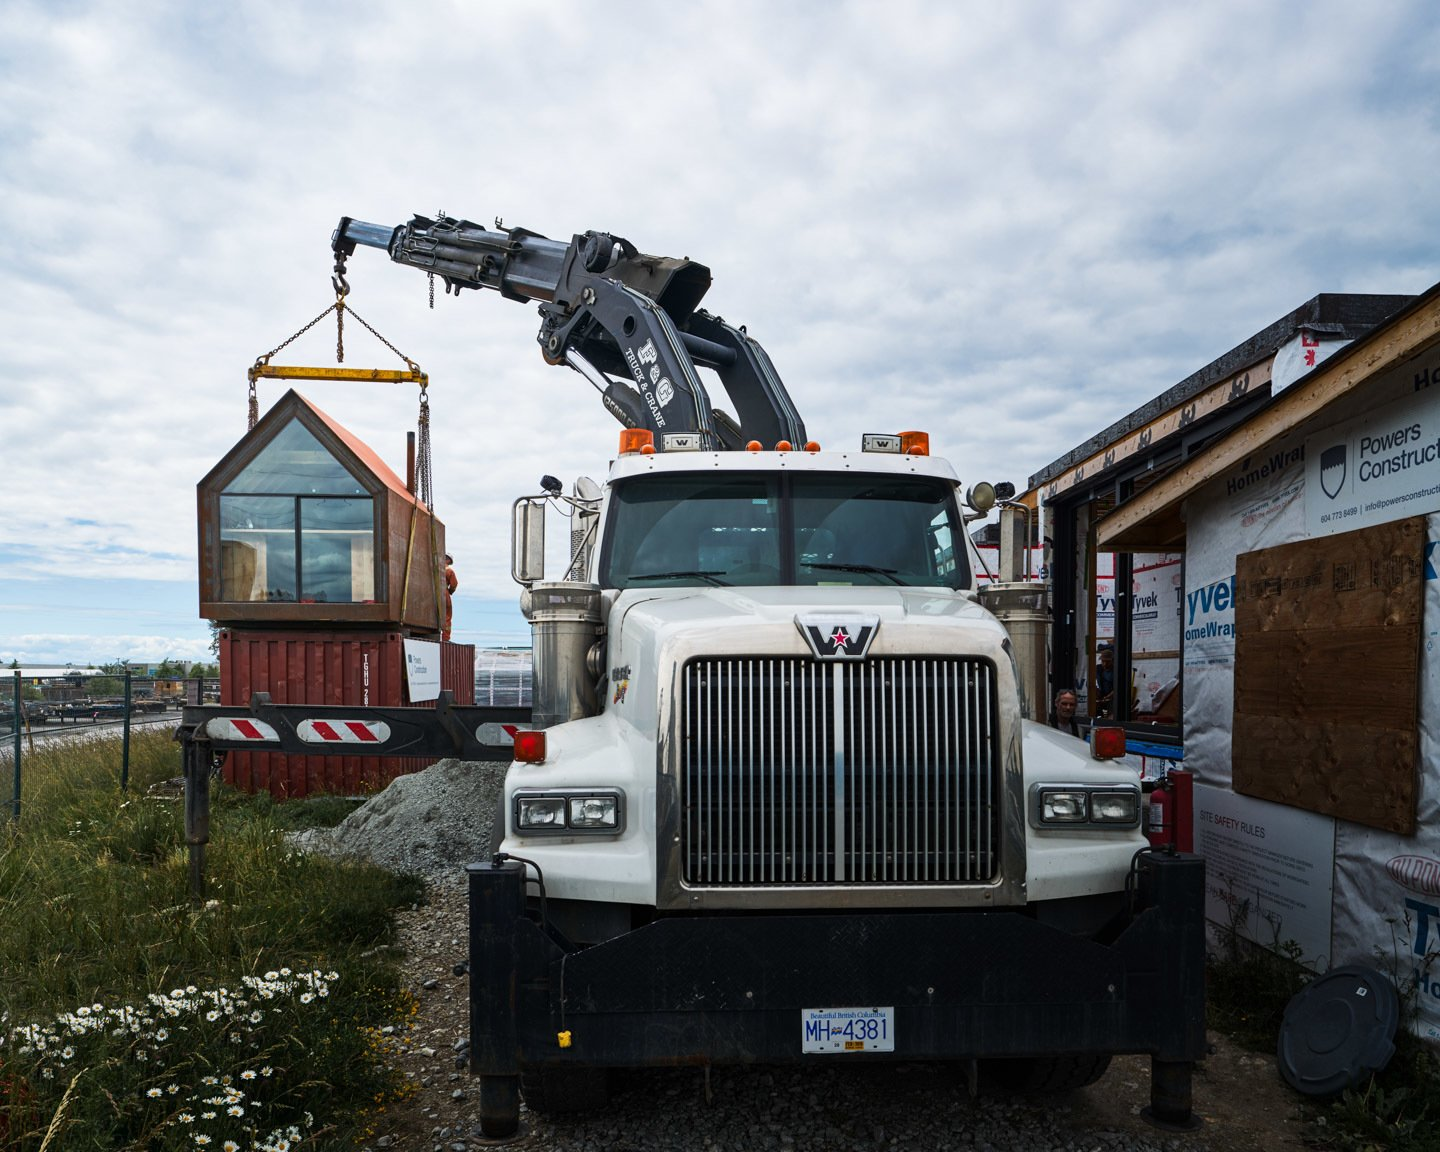 Site Shack being hoisted by crane for transport